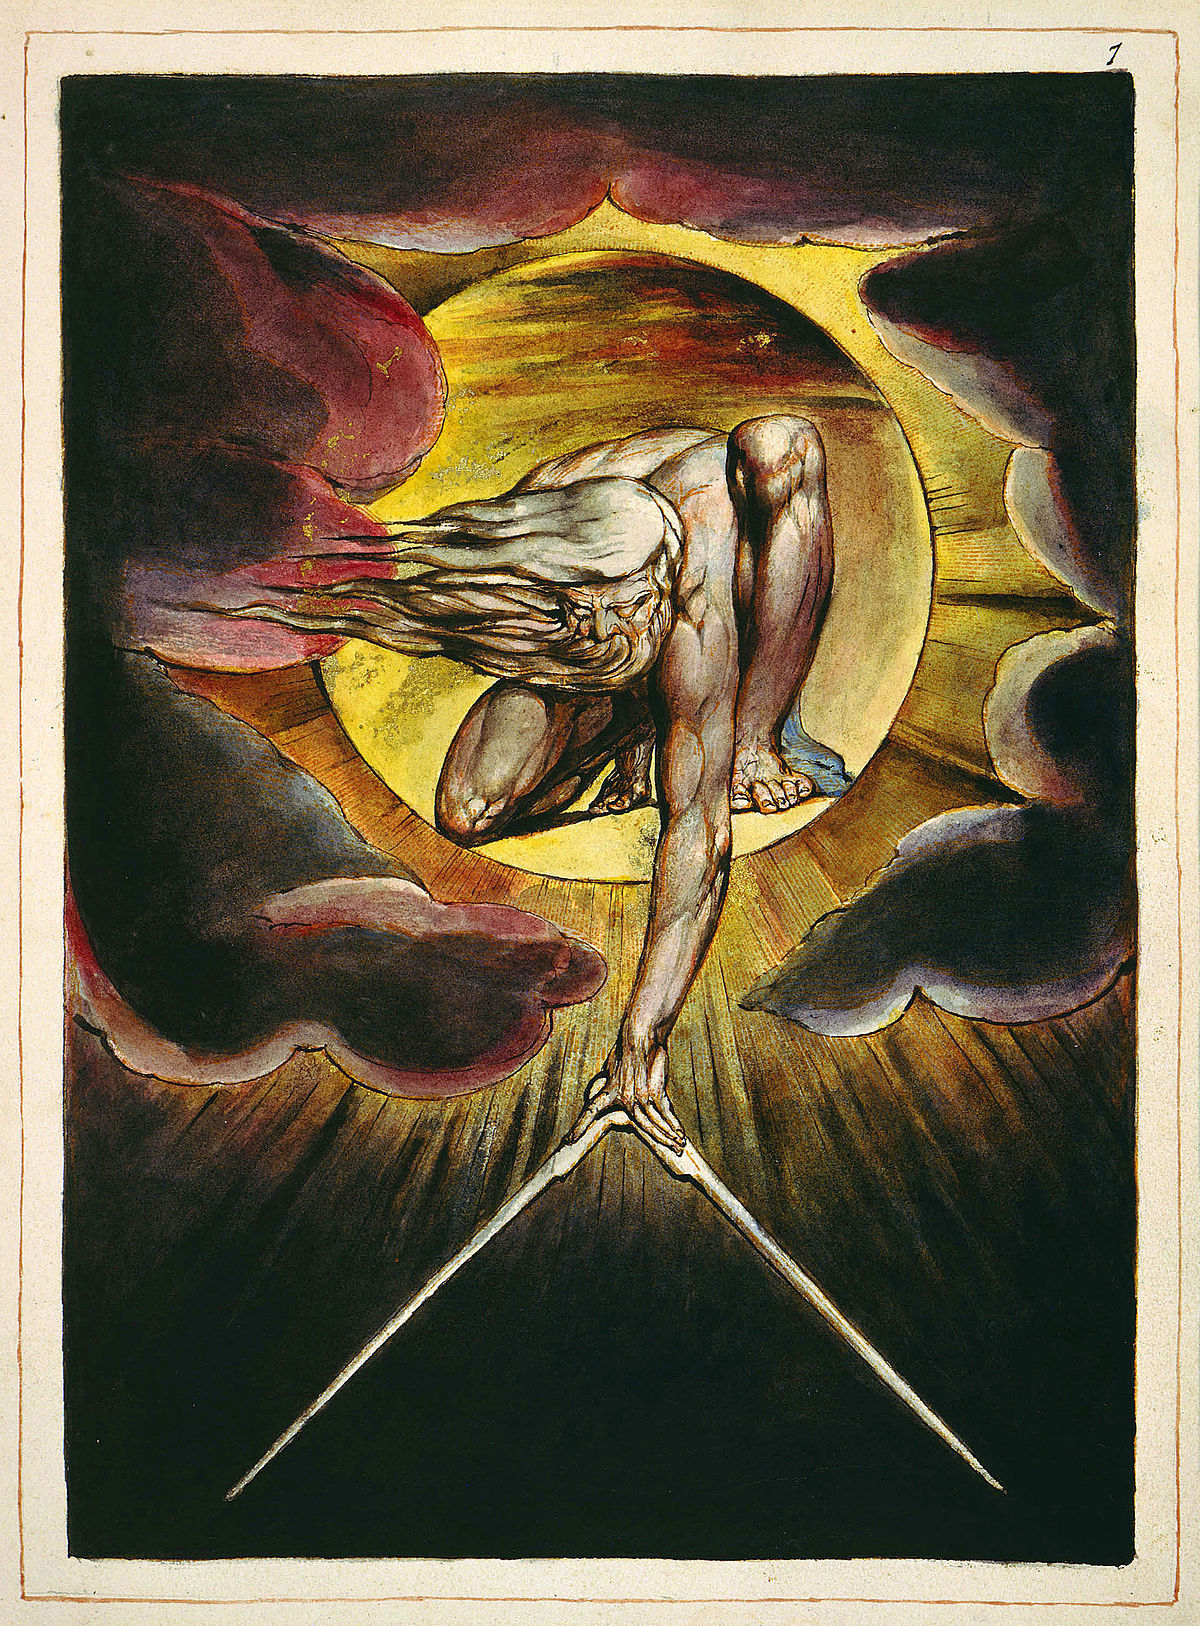 cuadro de William Blake